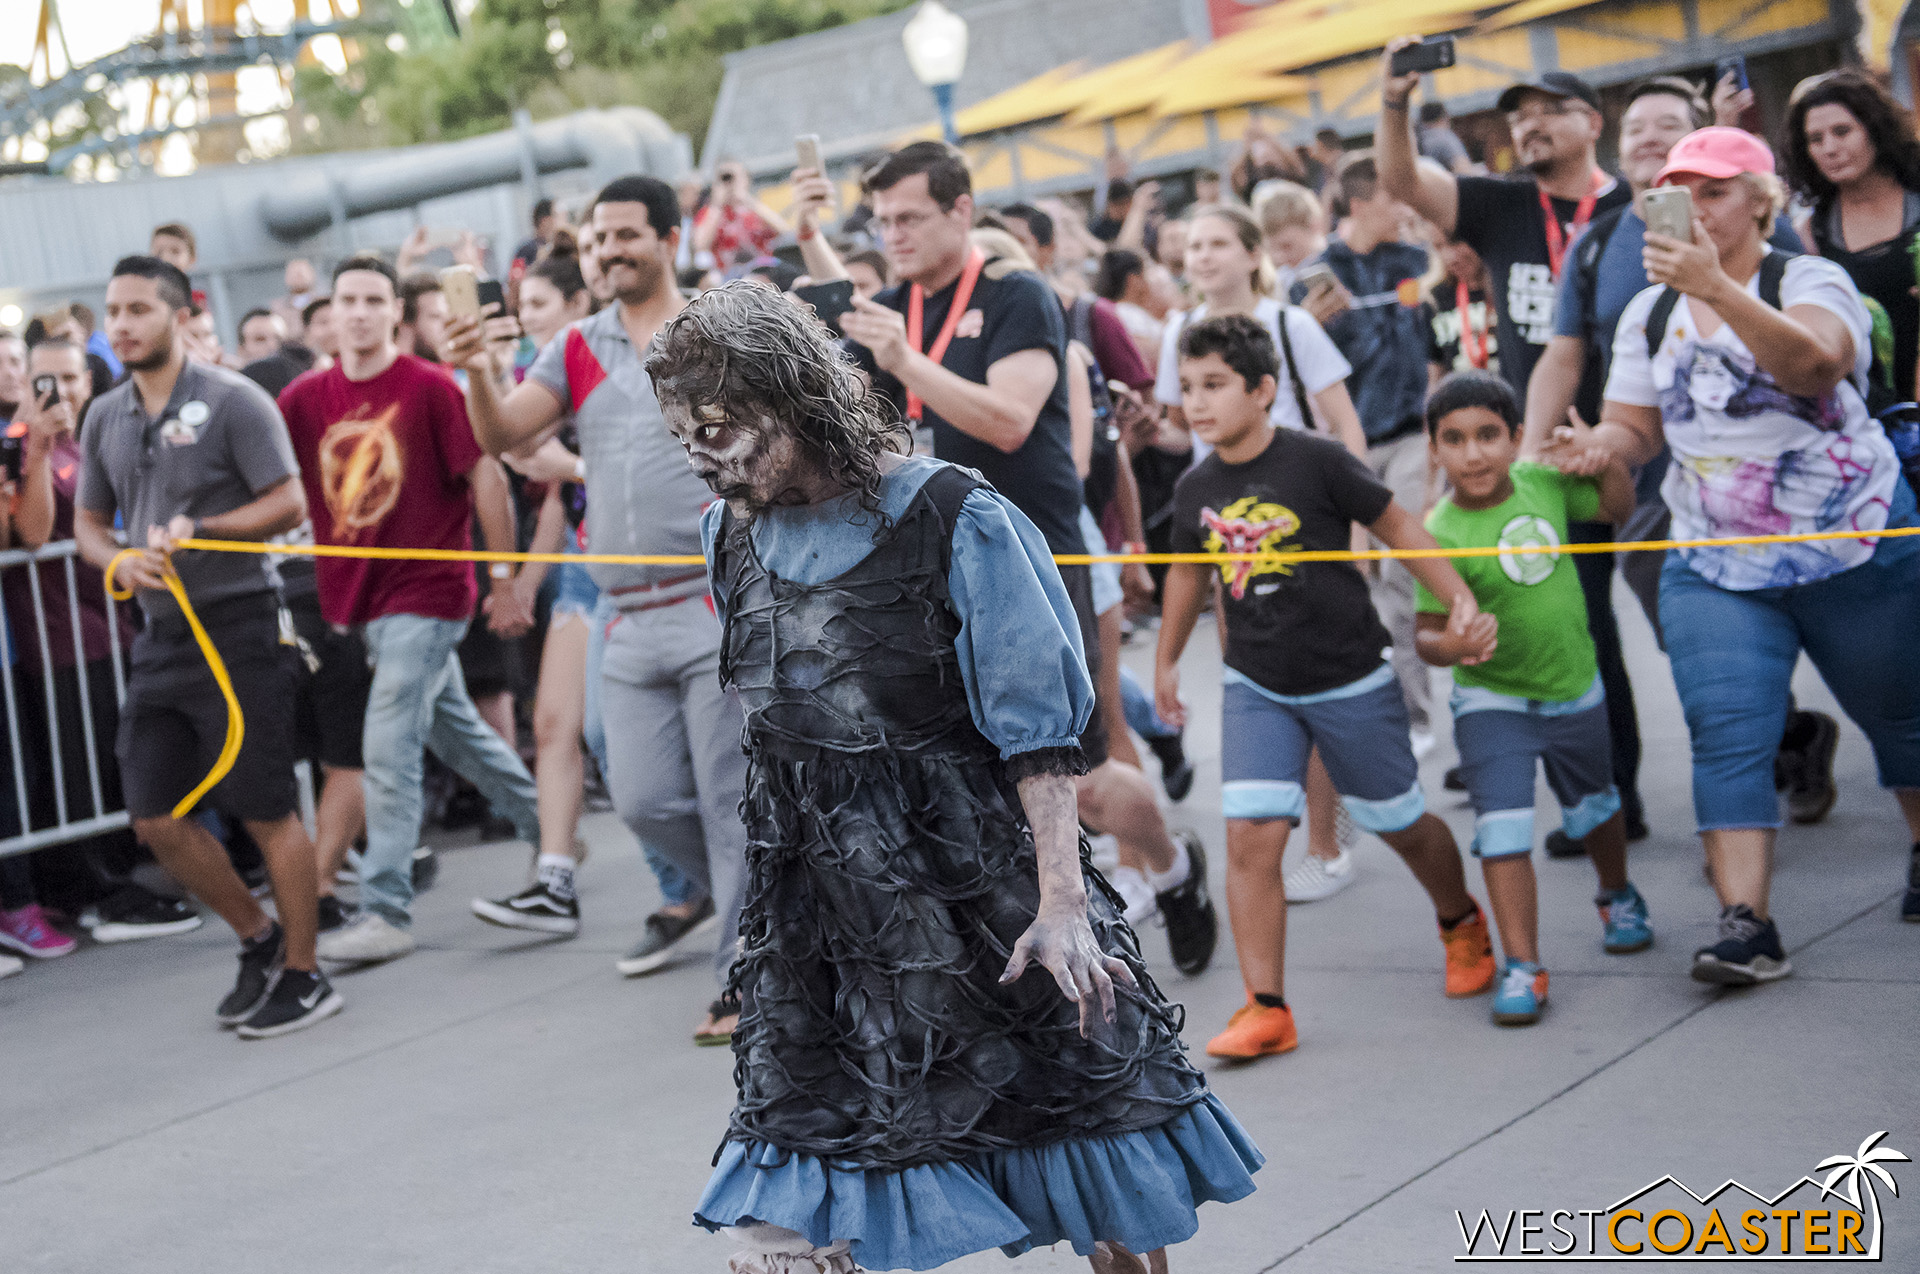 But it's a beloved and traditional moment unique to Fright Fest!